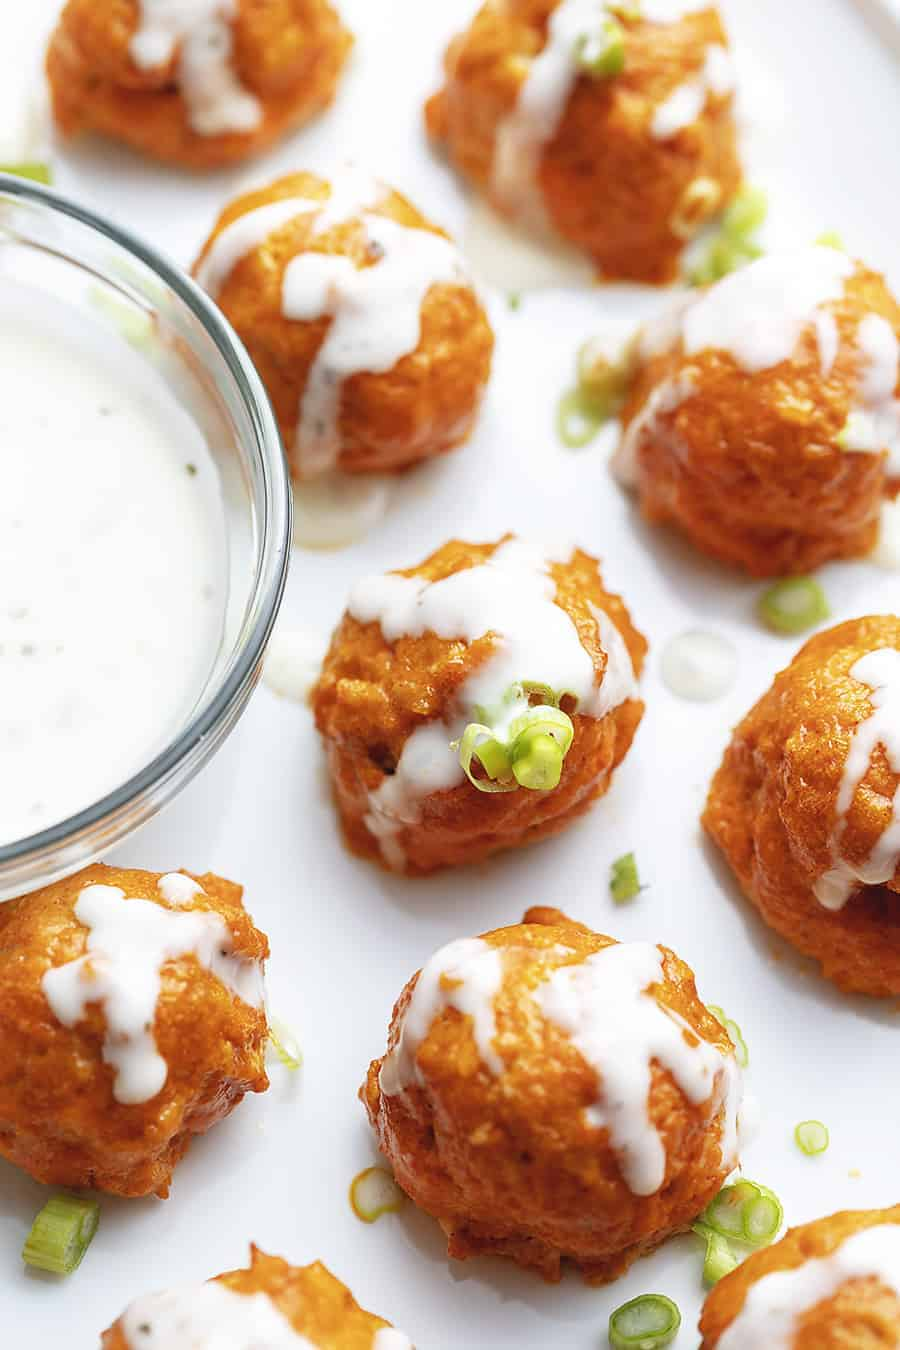 These keto Buffalo Chicken Meatballs are the perfect low carb appetizer! I love to serve them with extra buffalo sauce and ranch.